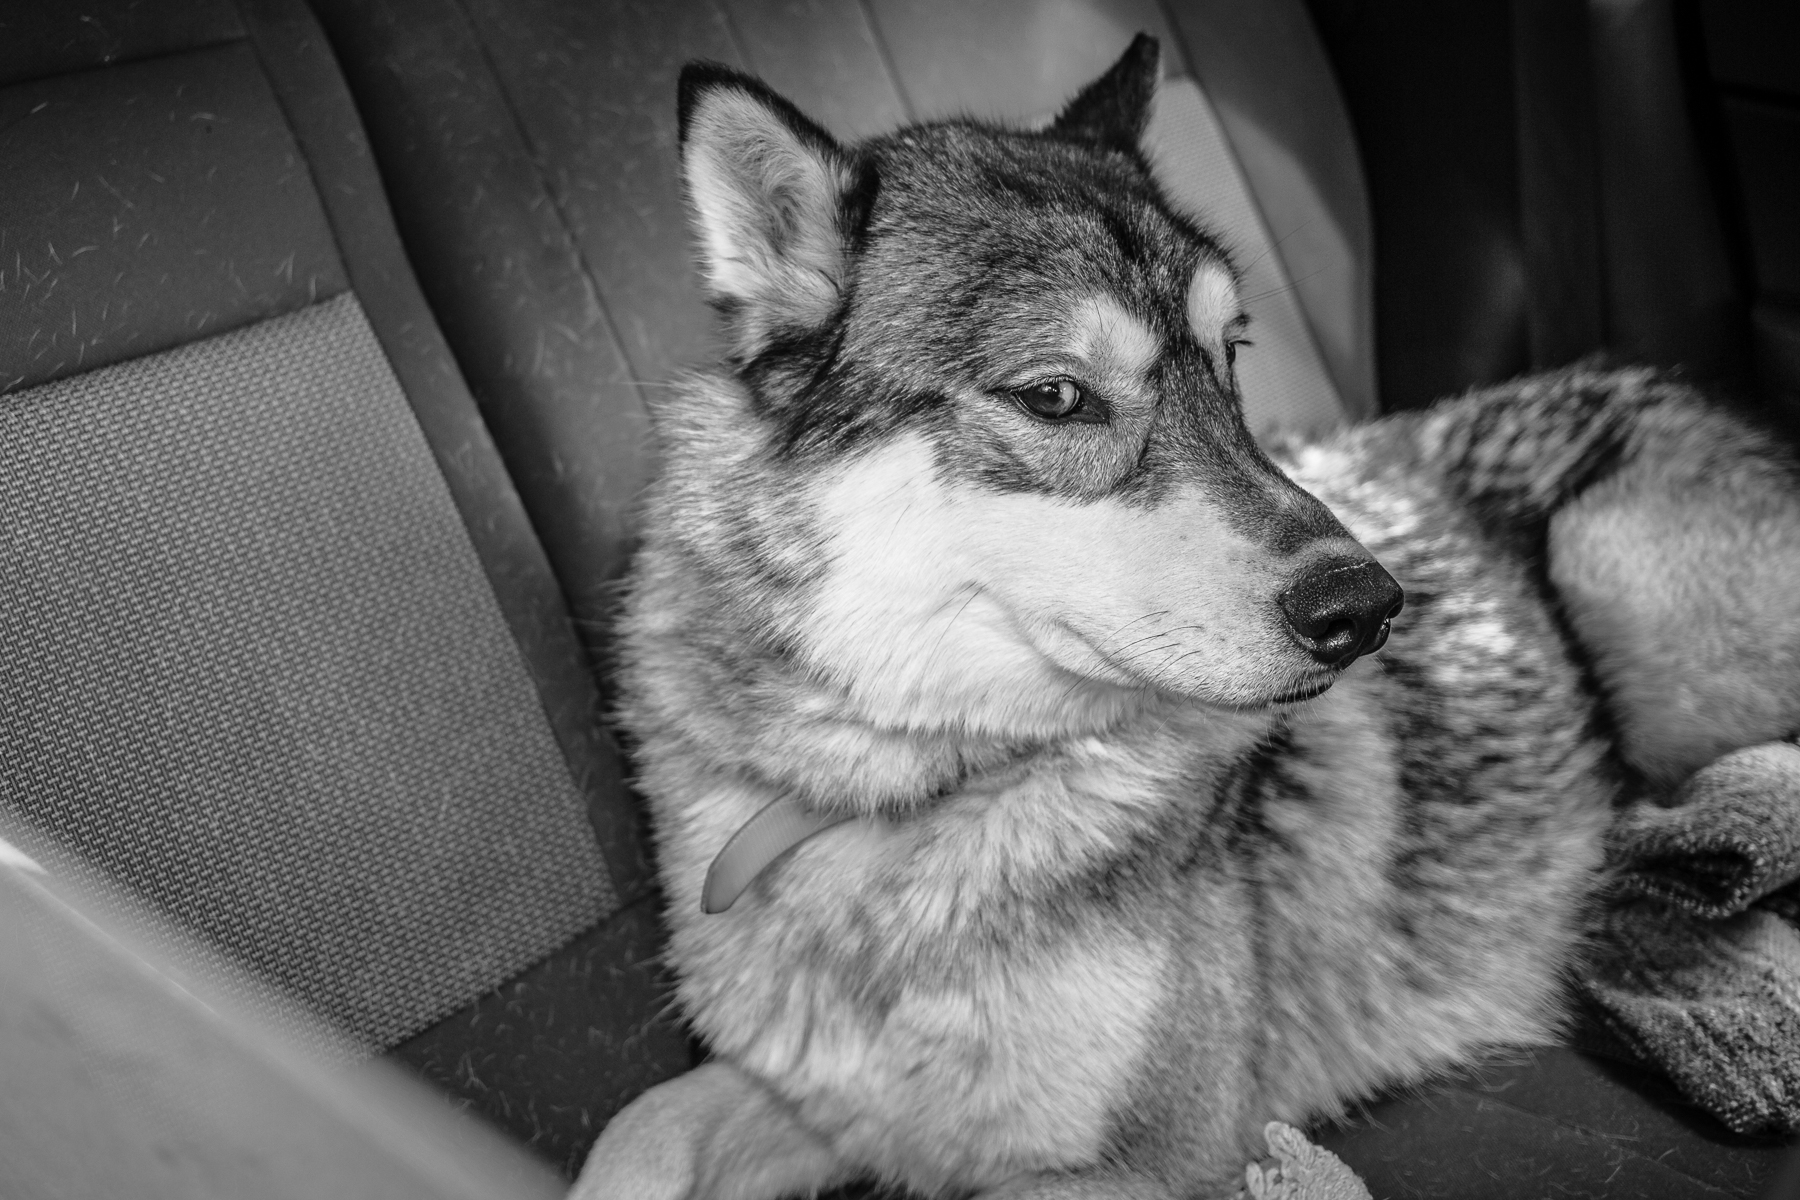 """I took a look in the back seat and said to the owner in the front, """"That's a hybrid, isn't it?"""" She smiled and said, """"Yup."""" I know enough about dogs - and wolves - to know it would not have ended well if my camera went any further into the car."""